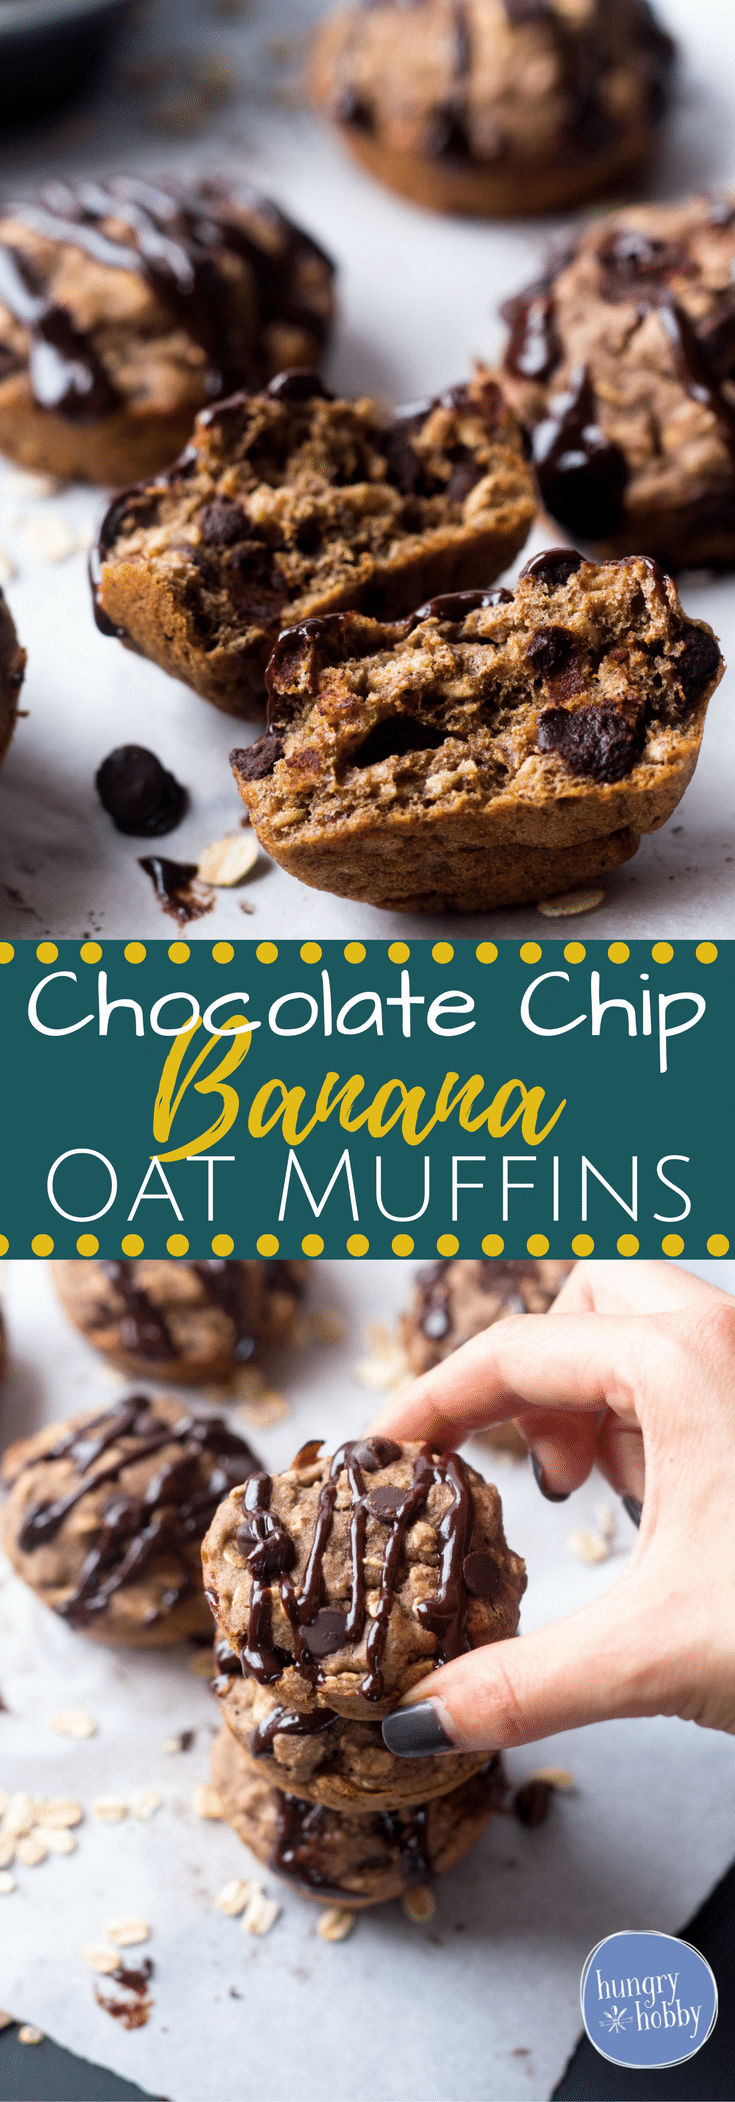 One Bowl Chocolate Chip Banana Oat Muffins - 135 calories per muffin, bursting with a balance of wholesome ingredients & sweet chocolate chips!